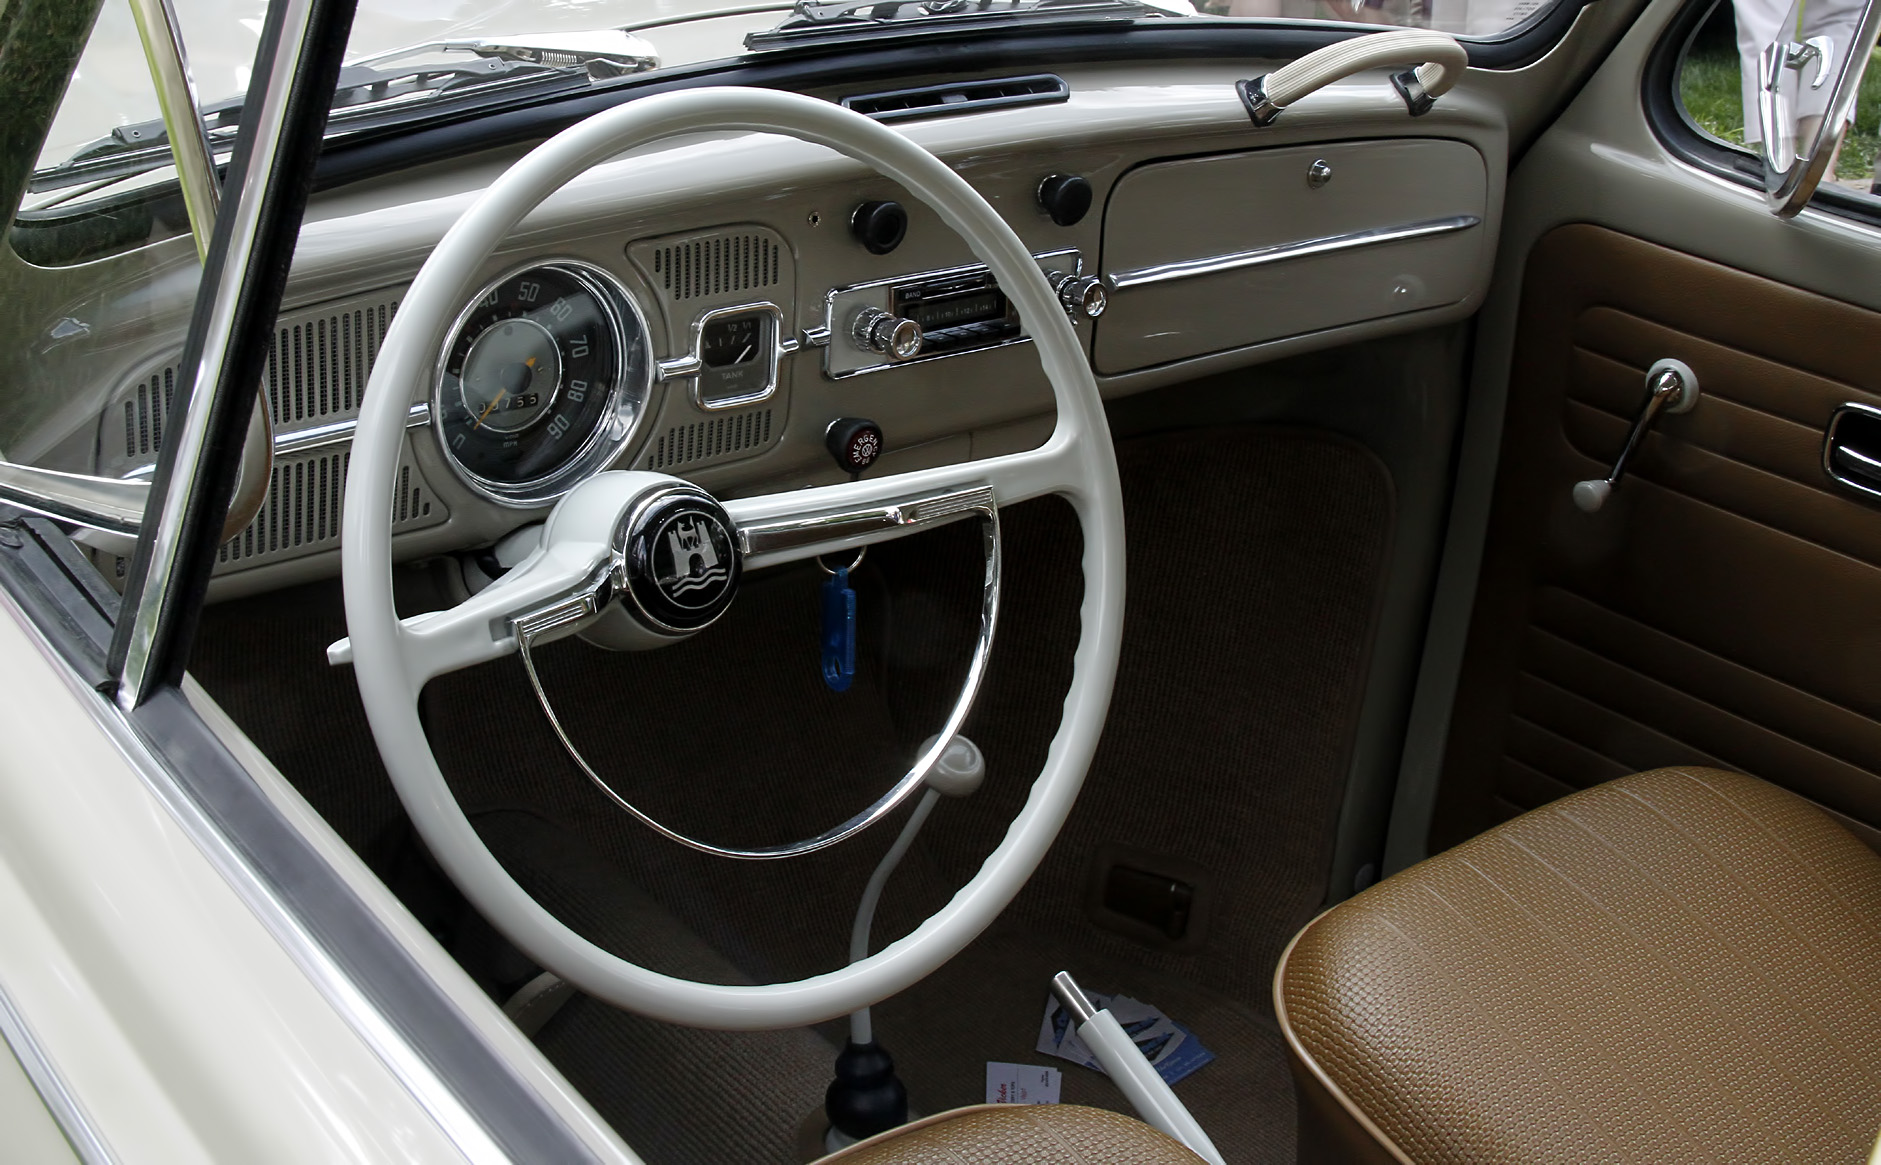 1967_VW_BUG_INTERIOR_WITH_GAS_GAGUE